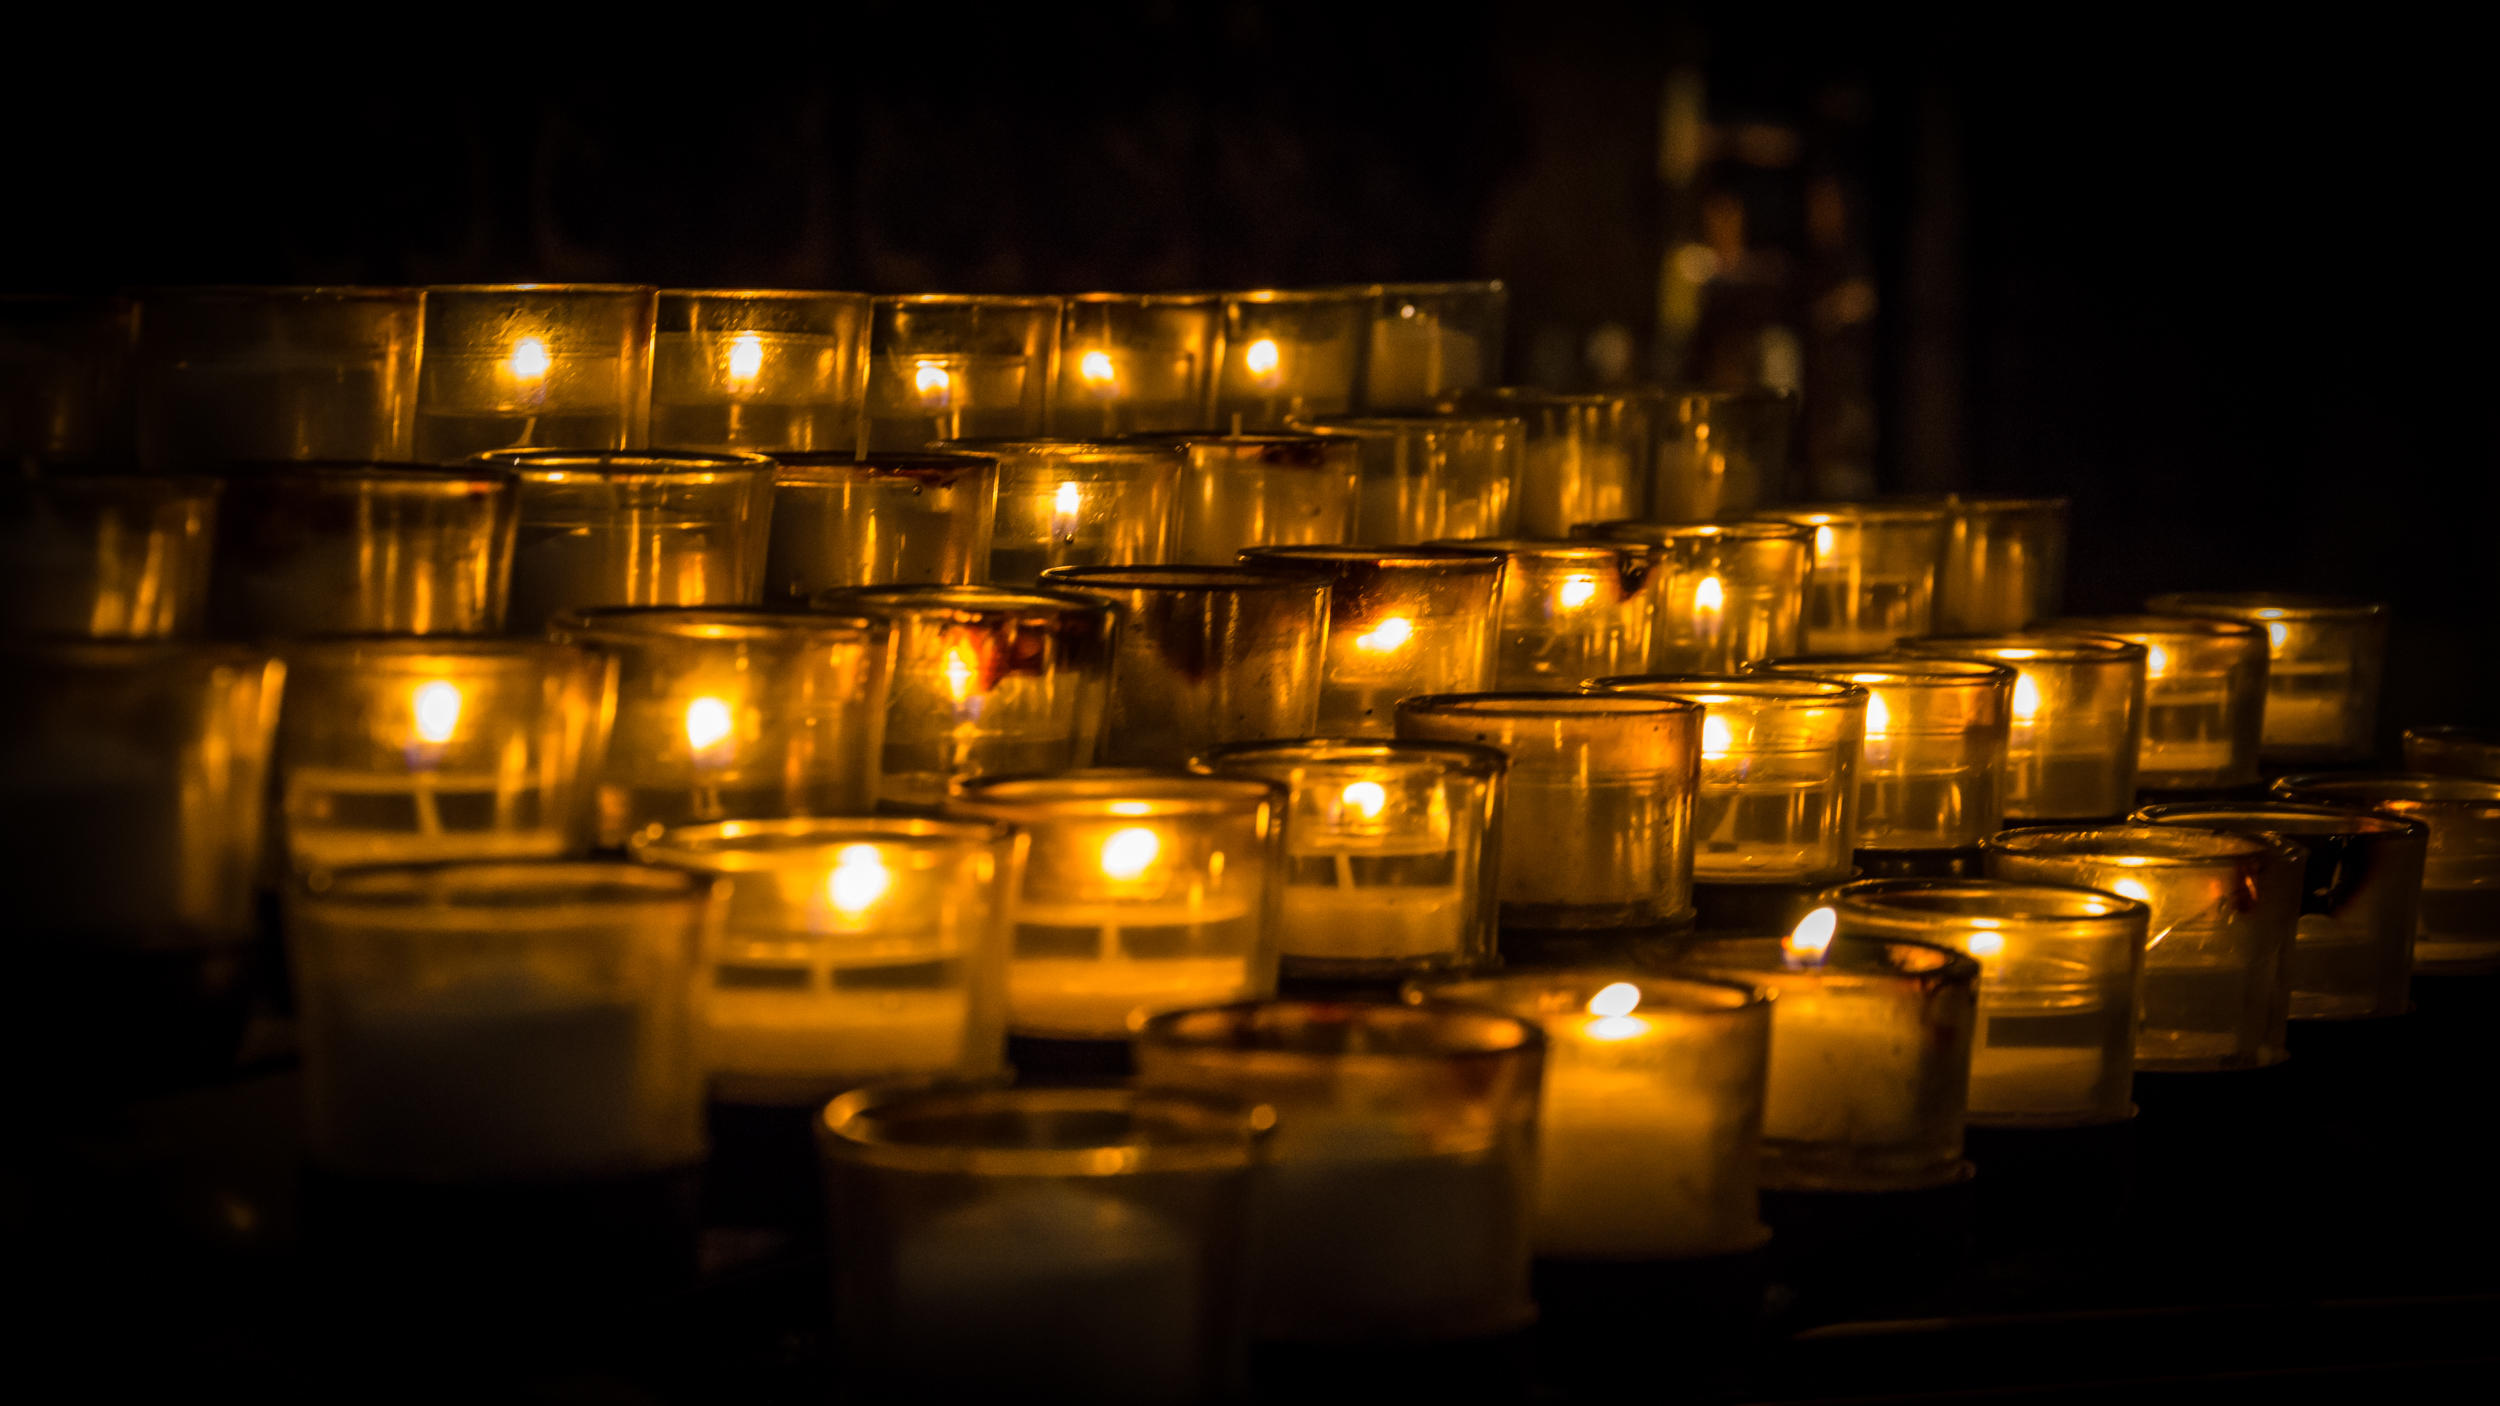 National Council of Churches to Hold Virtual Ecumenical Memorial Service on May 24 to Mourn the Lives Lost to COVID-19